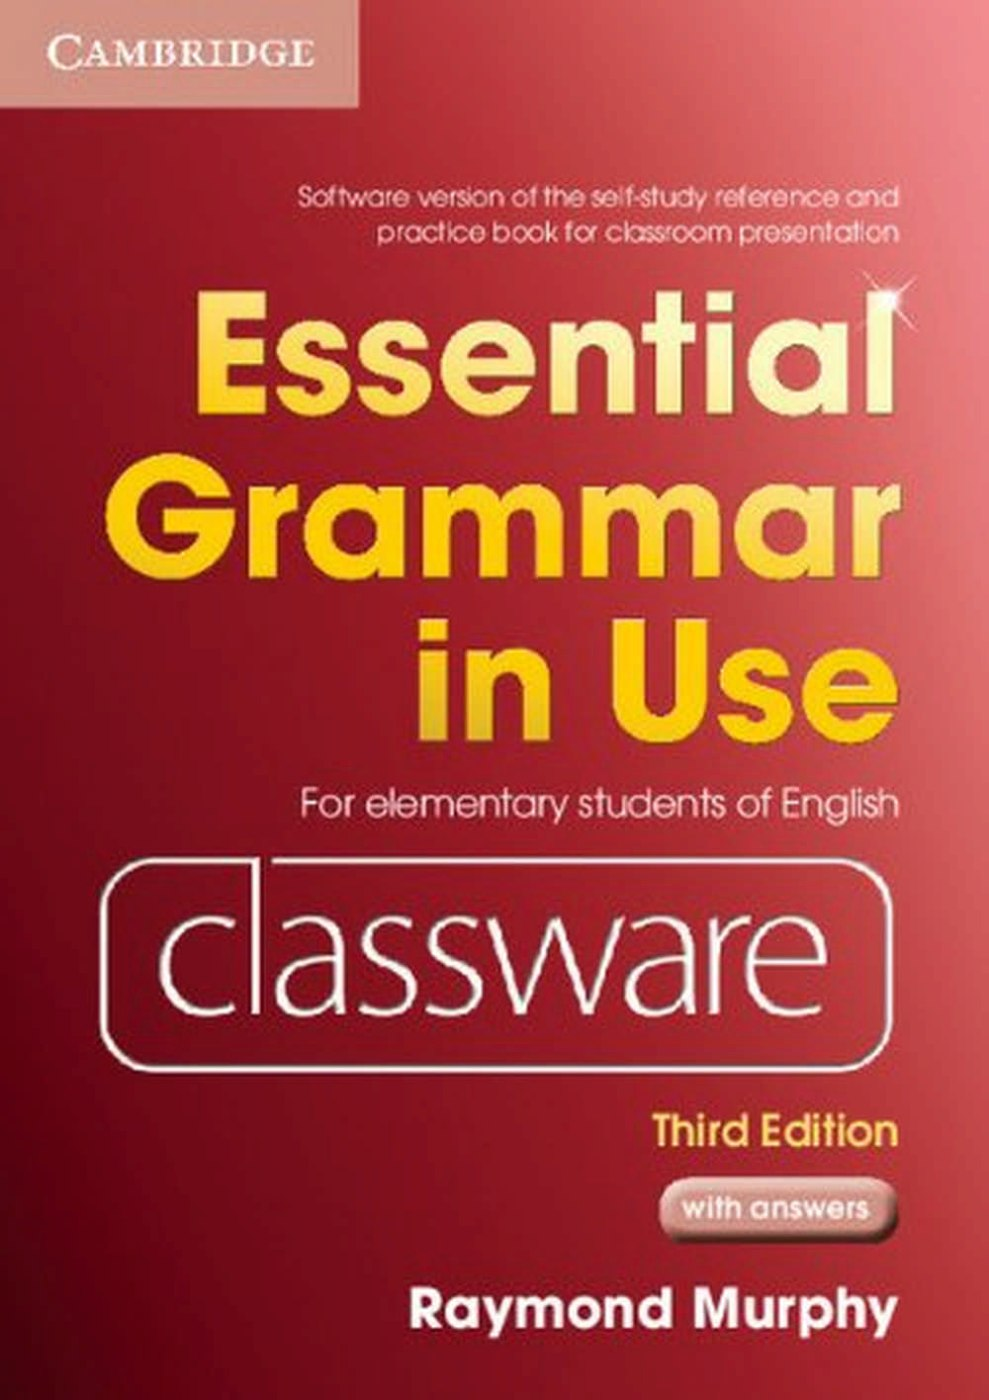 Essential Grammar in Use Classware: For Elementary Students of English, Classware